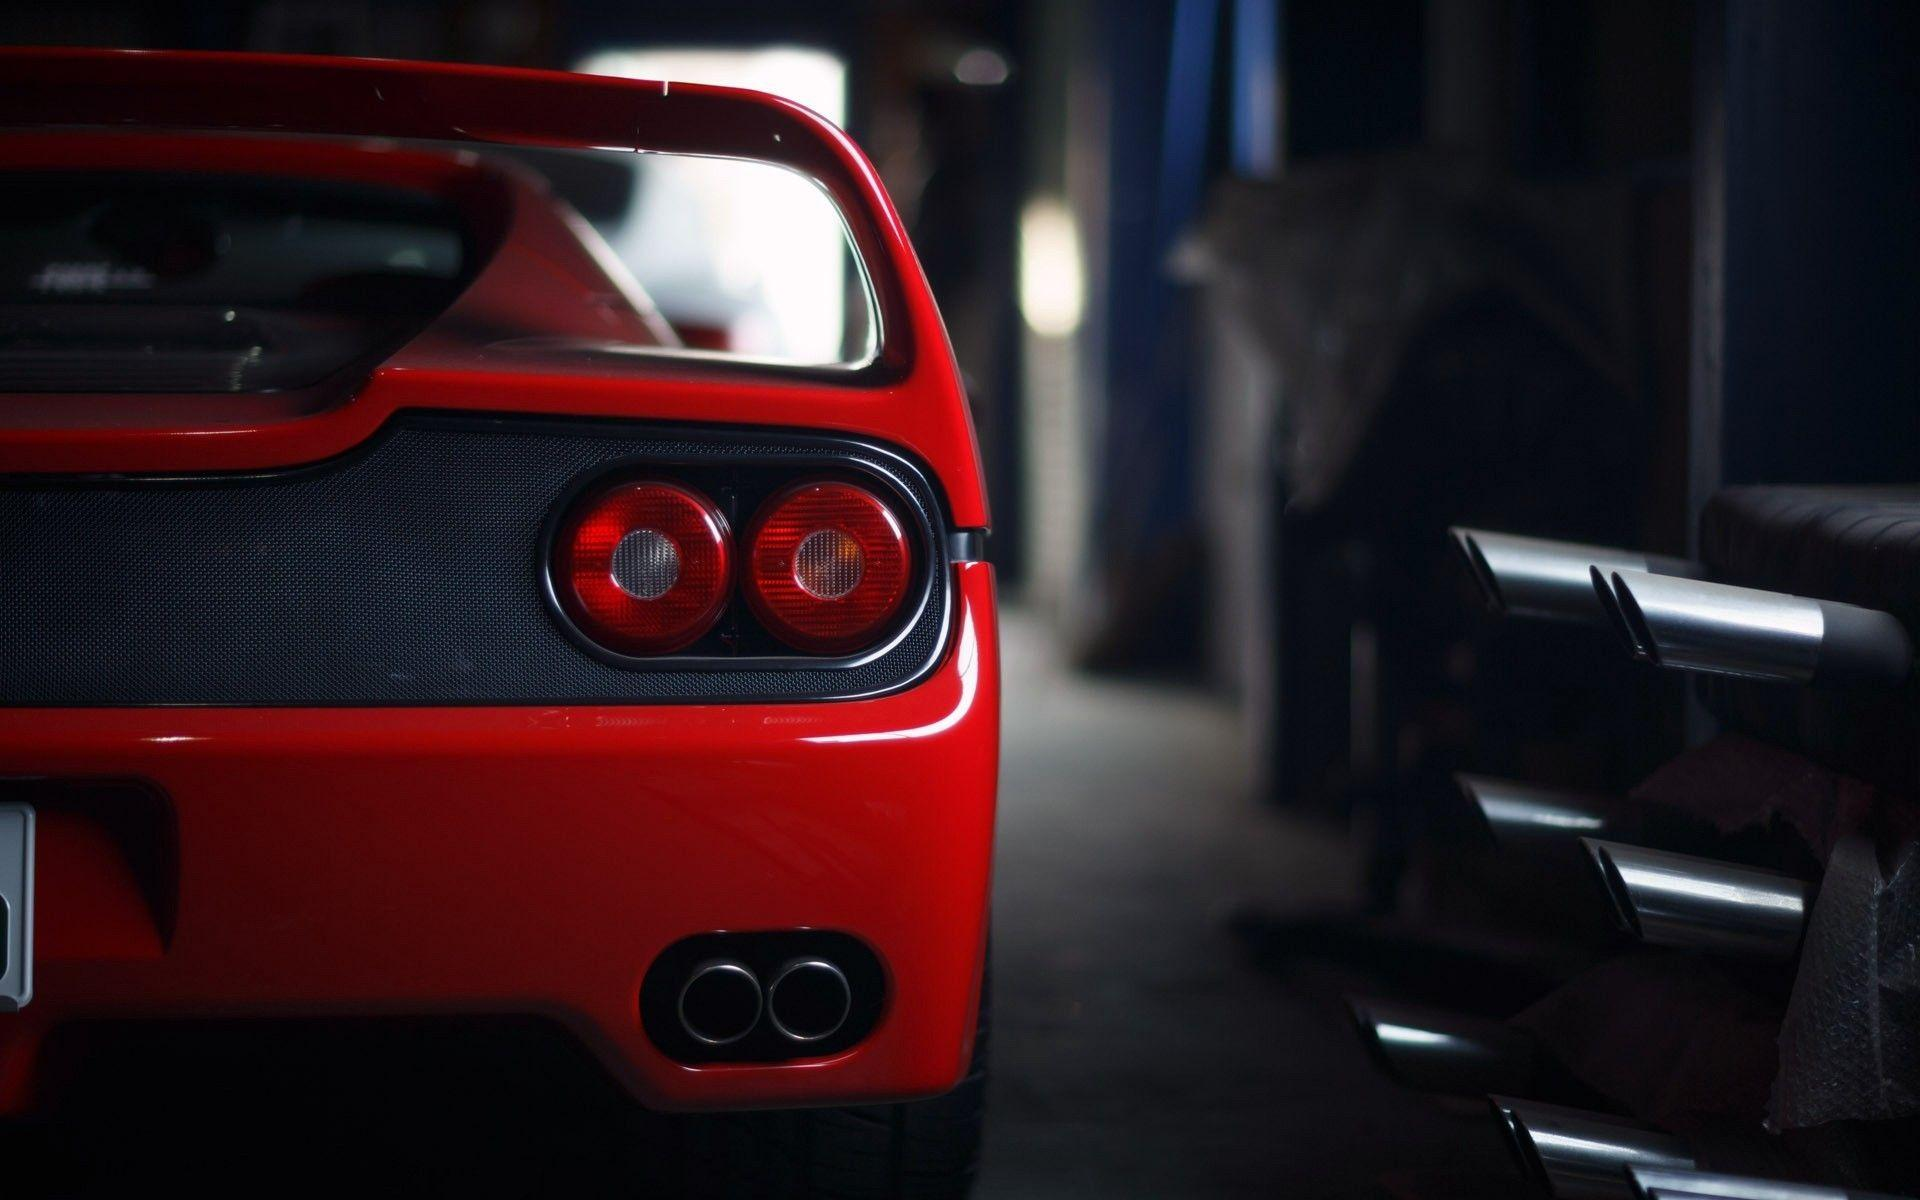 car vehicle ferrari f50 red cars wallpapers and backgrounds